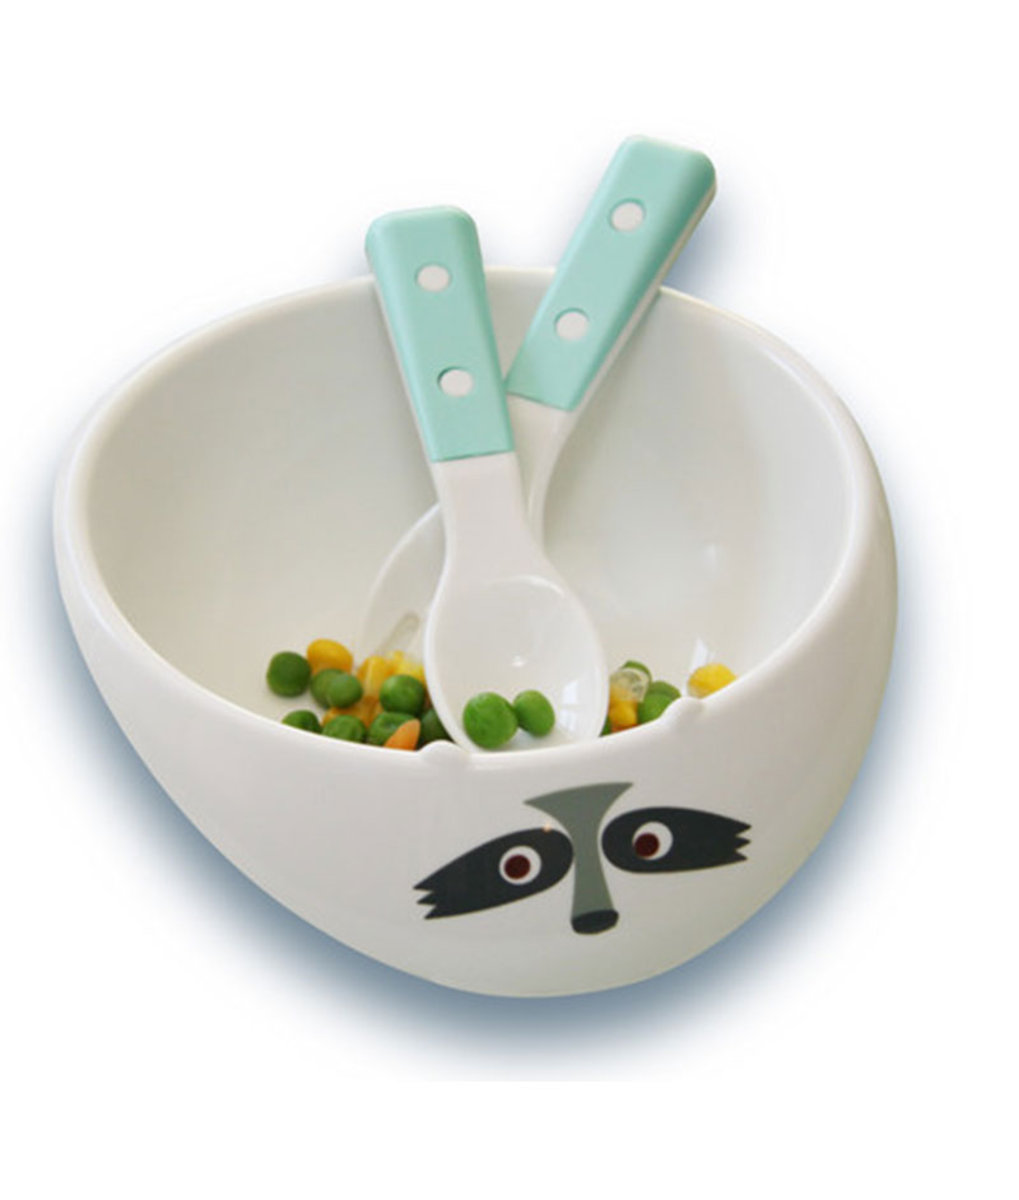 Gift Set - Bowl & Utensil s- Blue